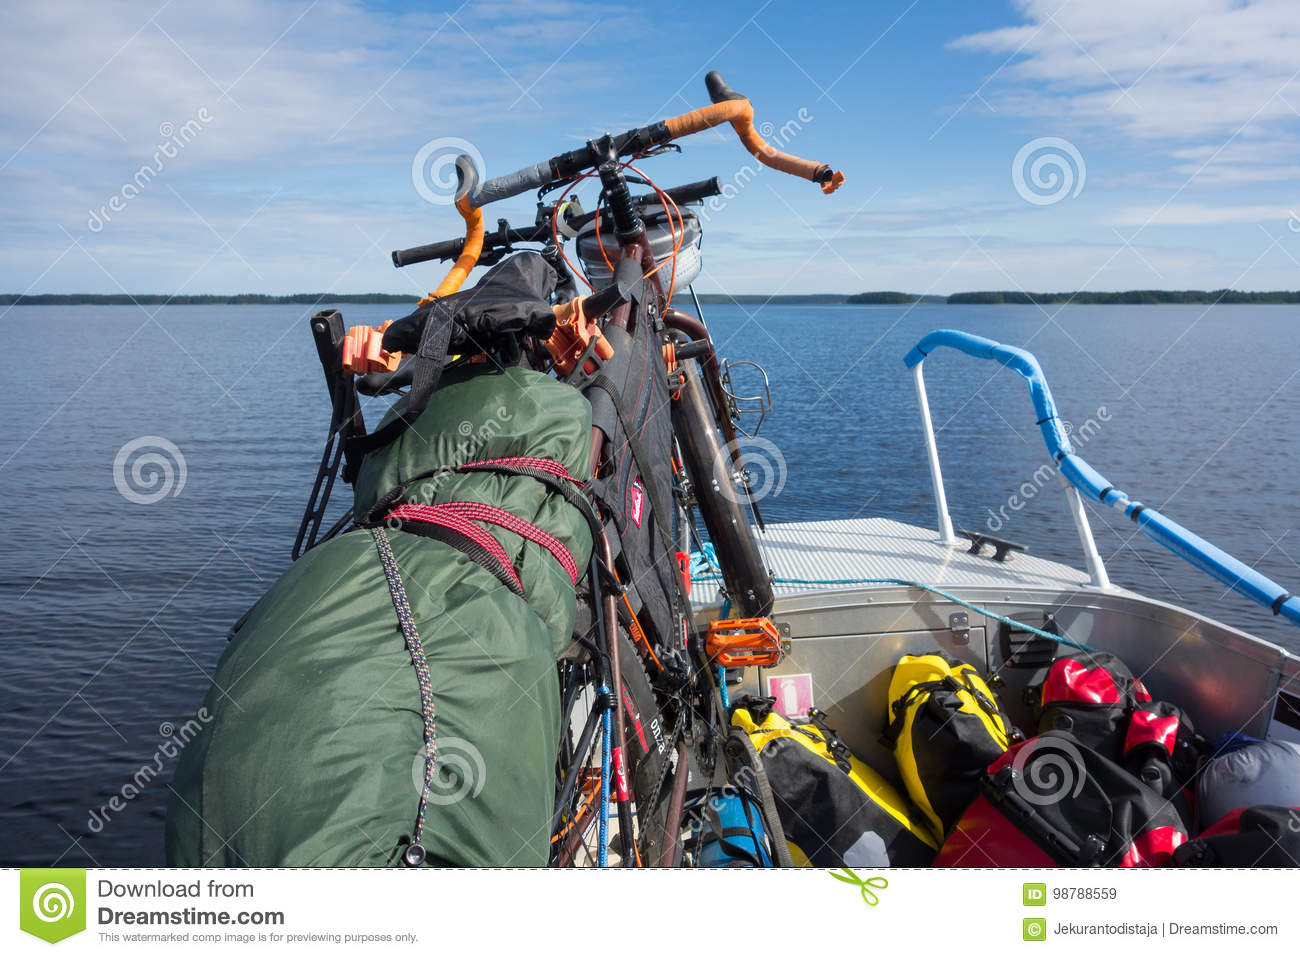 Touring bikes tied securely to a fishing boat on lake Saimaa, Finland